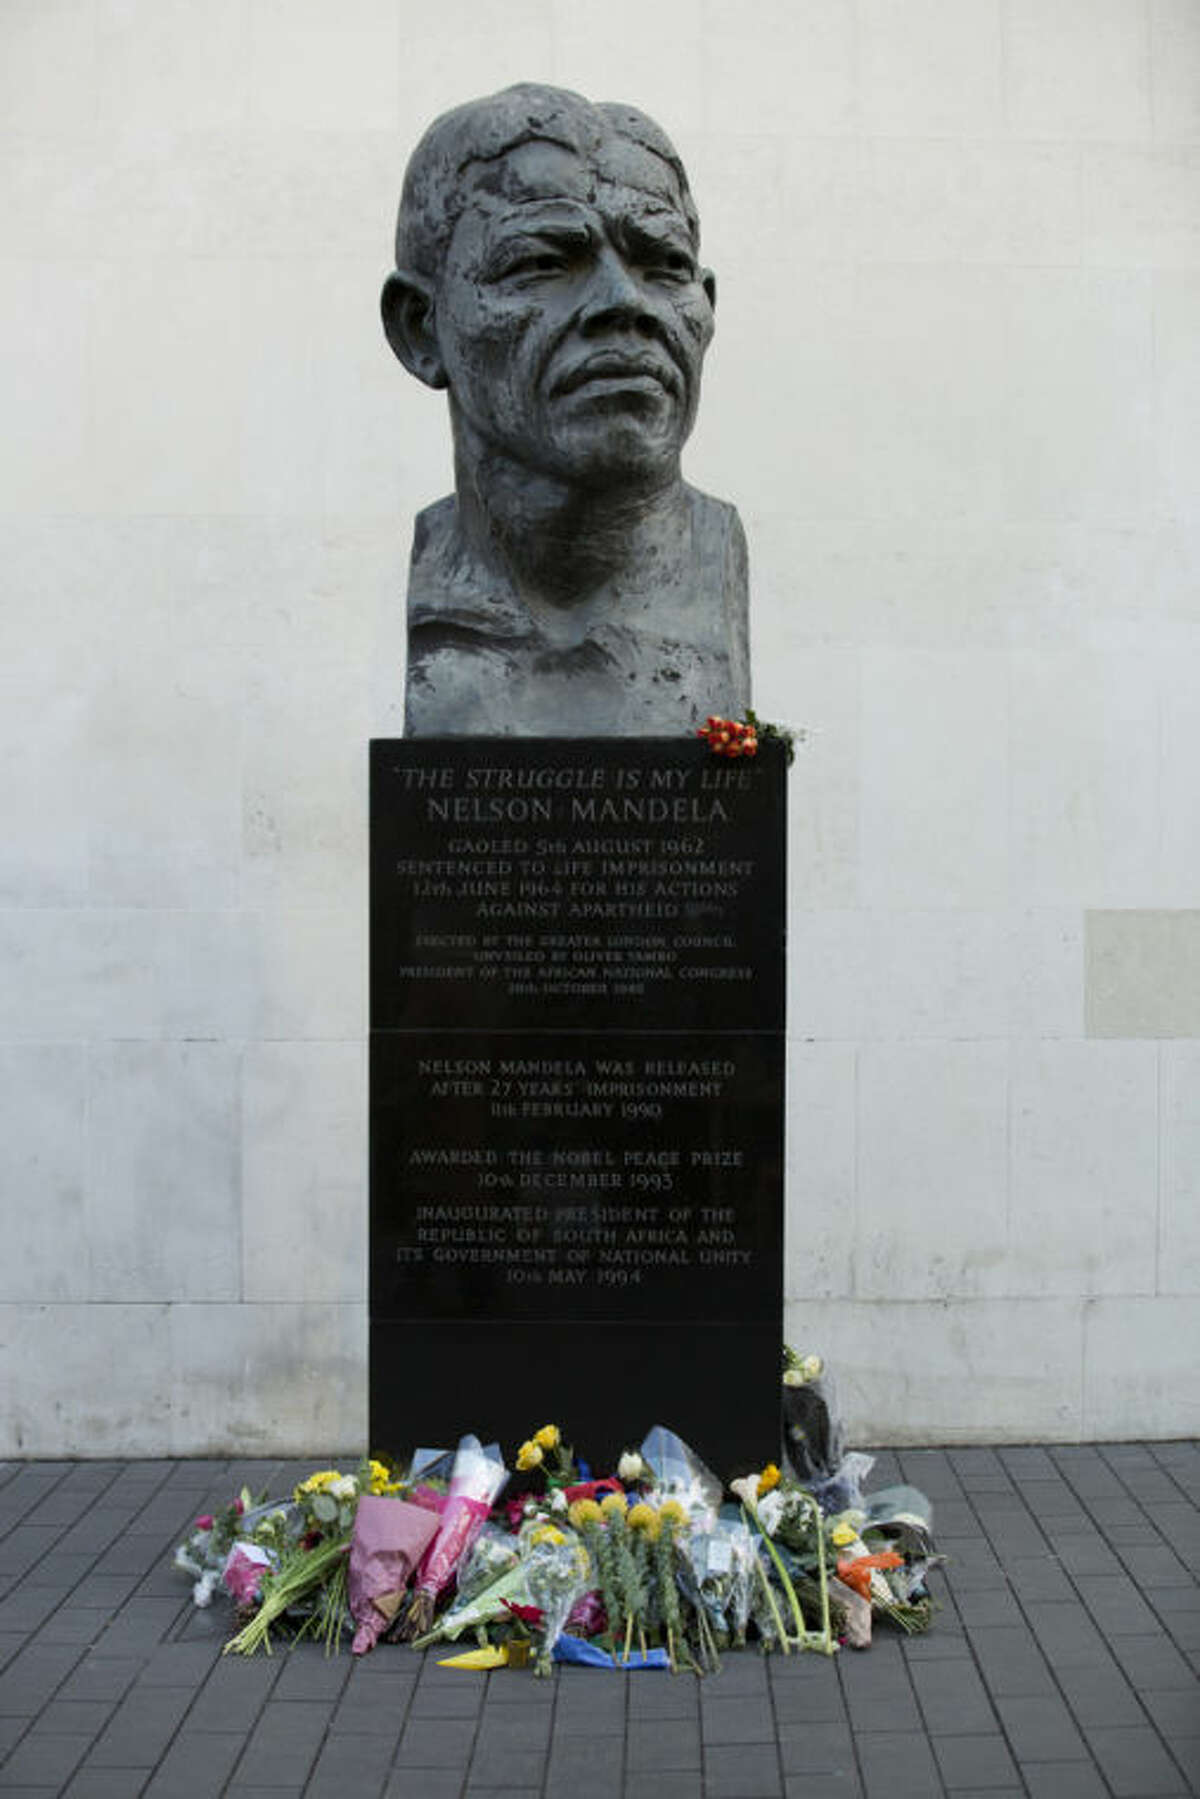 Flowers are seen underneath a statue of former South African president Nelson Mandela, at the side of the Royal Festival Hall on the south bank of London, Friday, Dec. 6, 2013. Mandela passed away Thursday night after a long illness. He was 95. As word of Mandela's death spread, current and former presidents, athletes and entertainers, and people around the world spoke about the life and legacy of the former South African leader. (AP Photo/Jon Super)